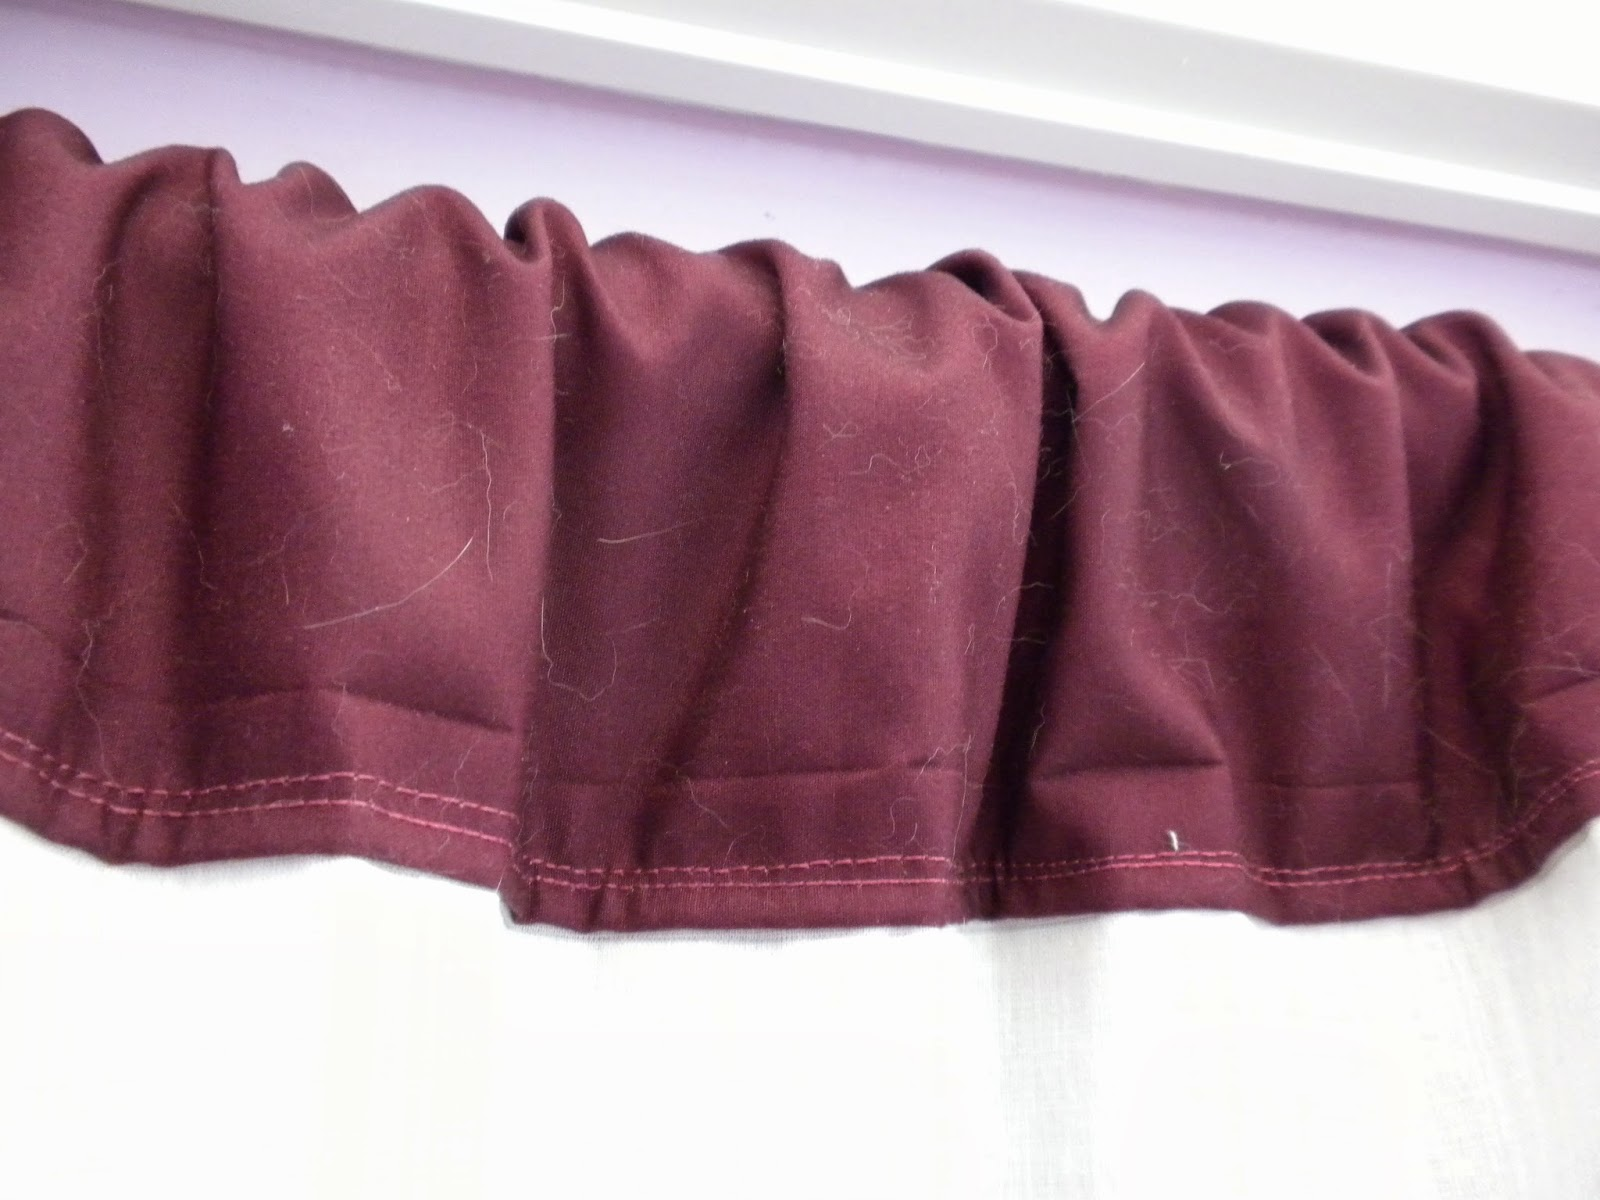 Refashioning a Bathroom Curtain by Substance of Living